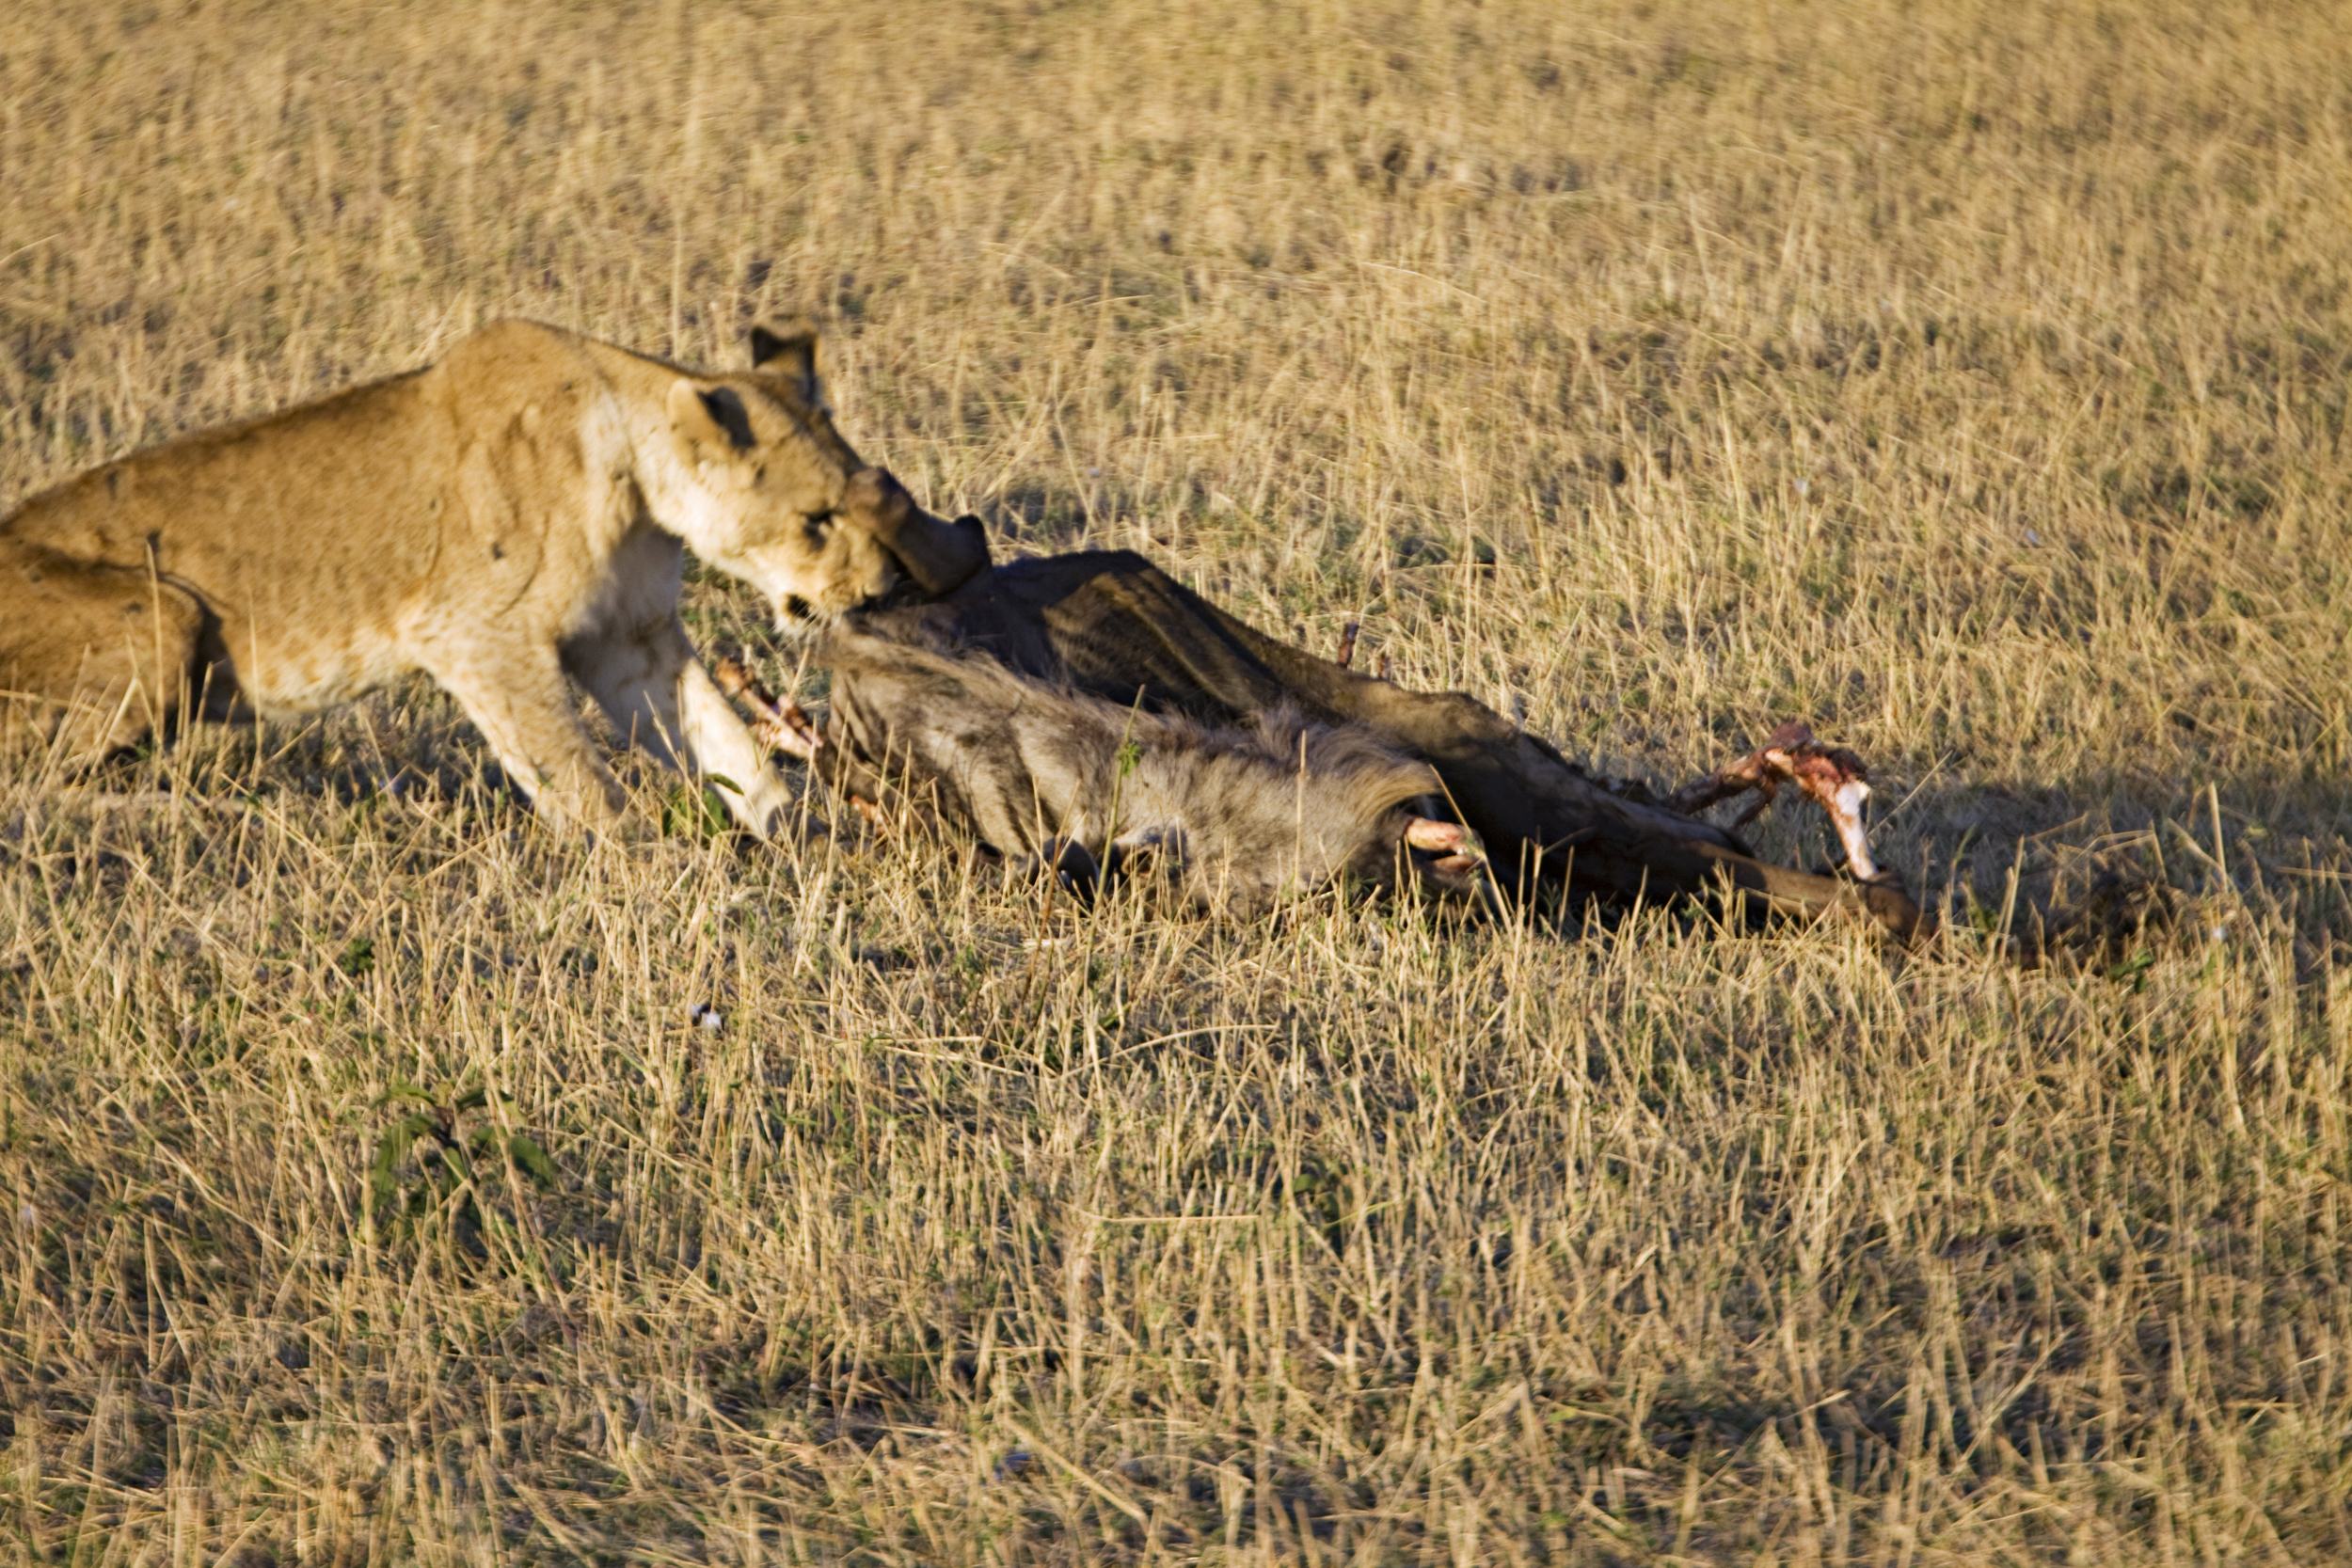 Female lion with a Wildabeest kill early in the morning